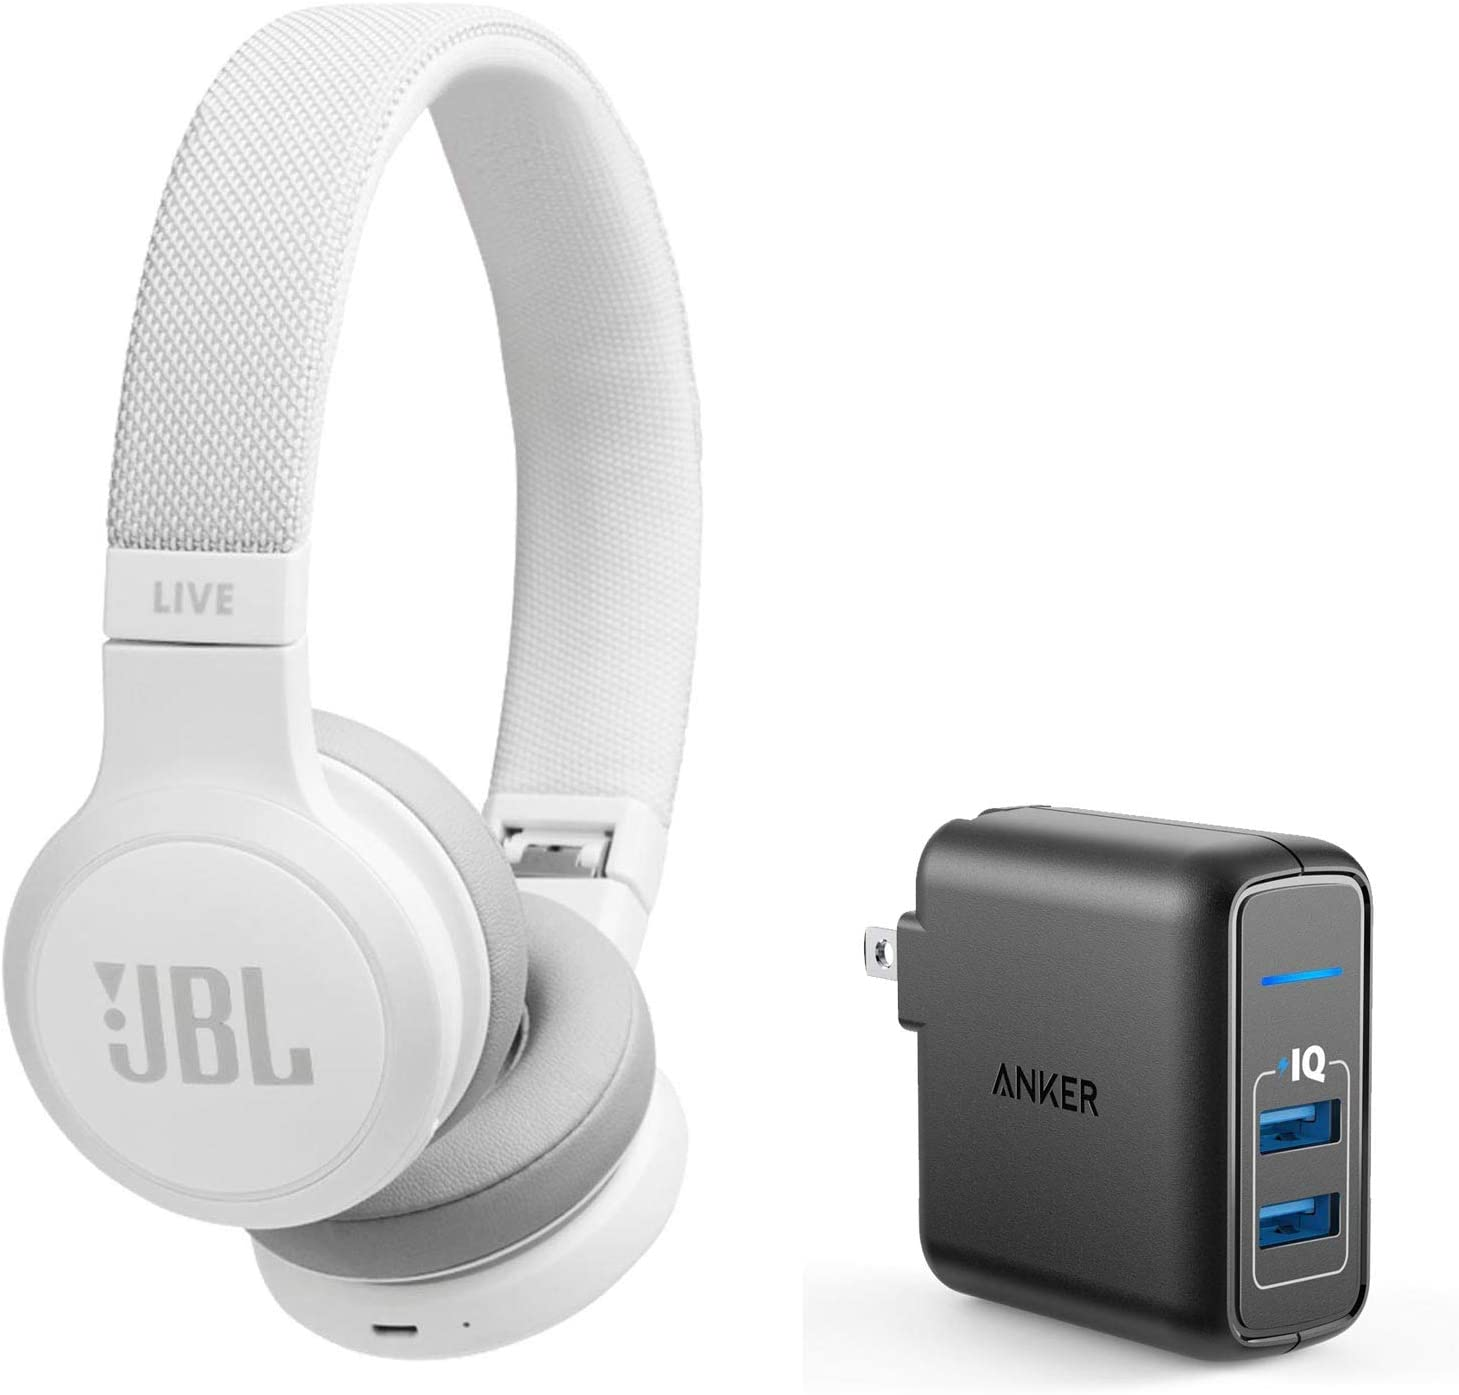 JBL Live 400BT On-Ear Wireless Bluetooth Headphones Bundle with Anker PowerPort Elite 2 Port USB Wall Charger - White